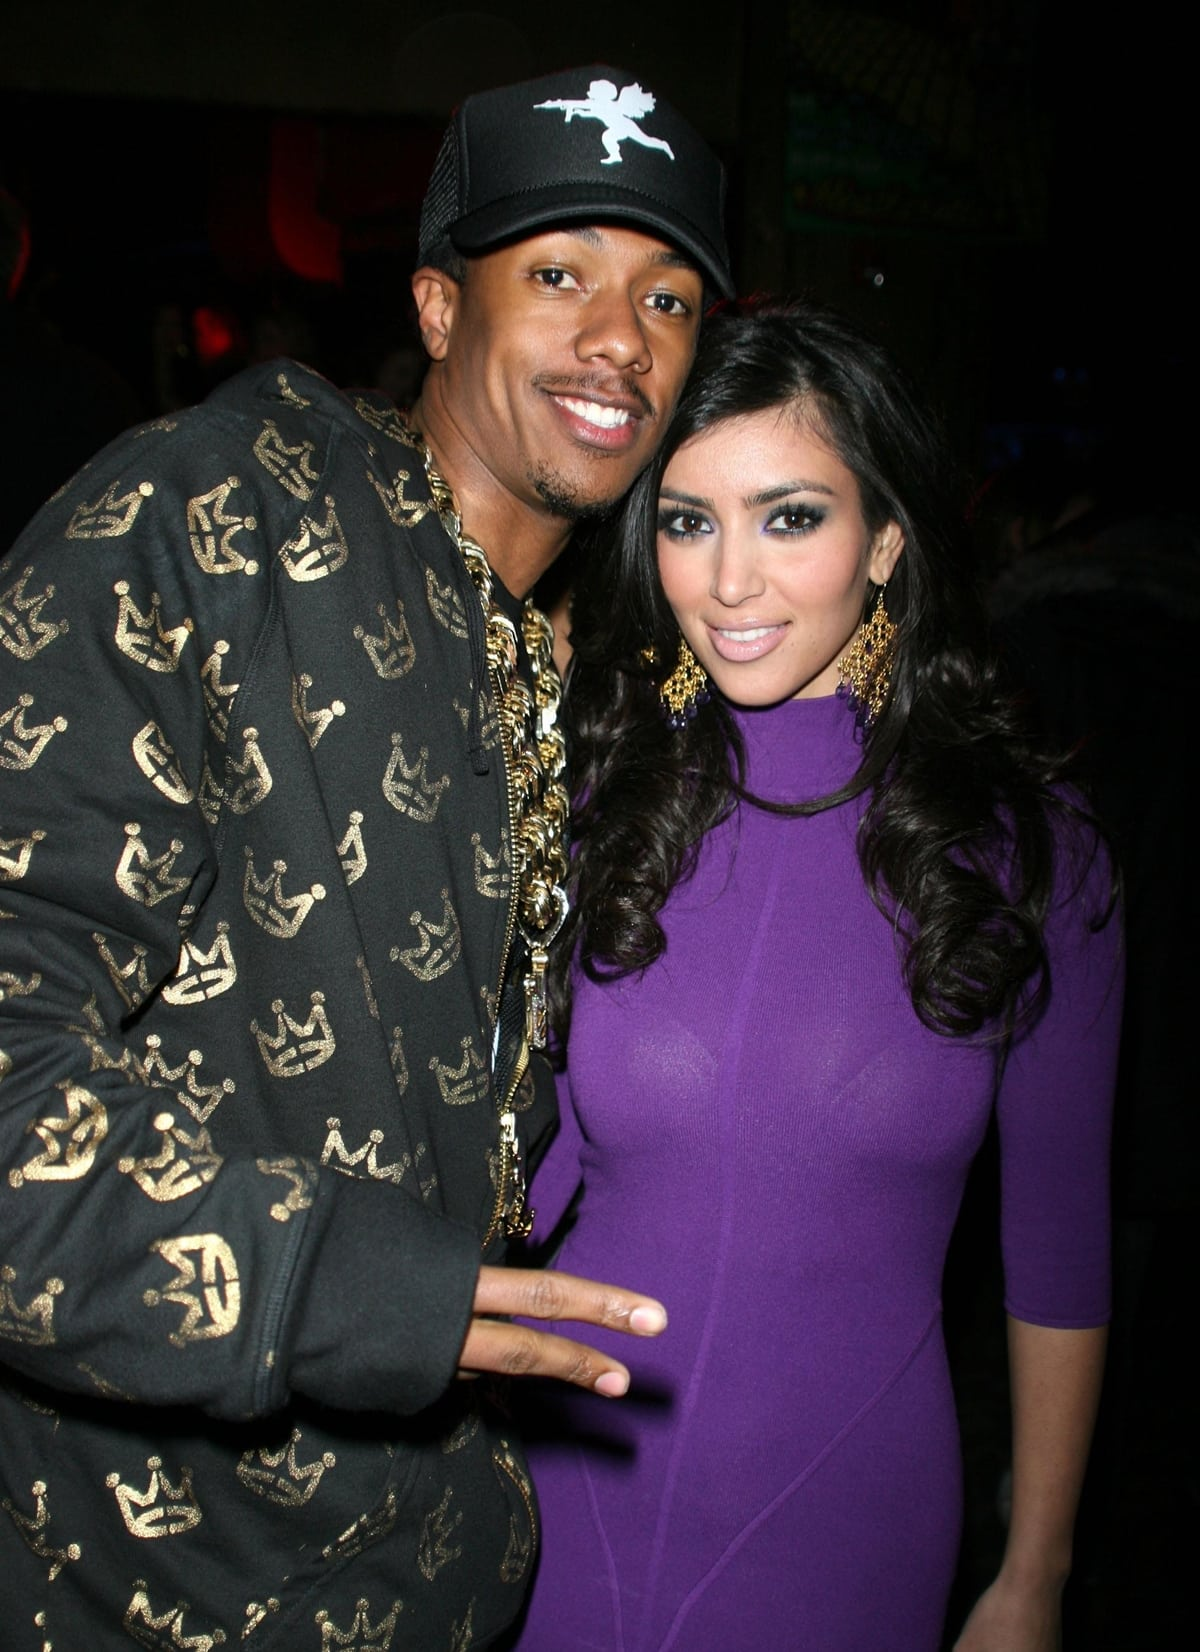 Nick Cannon and Kim Kardashian dated briefly in 2006 and 2007